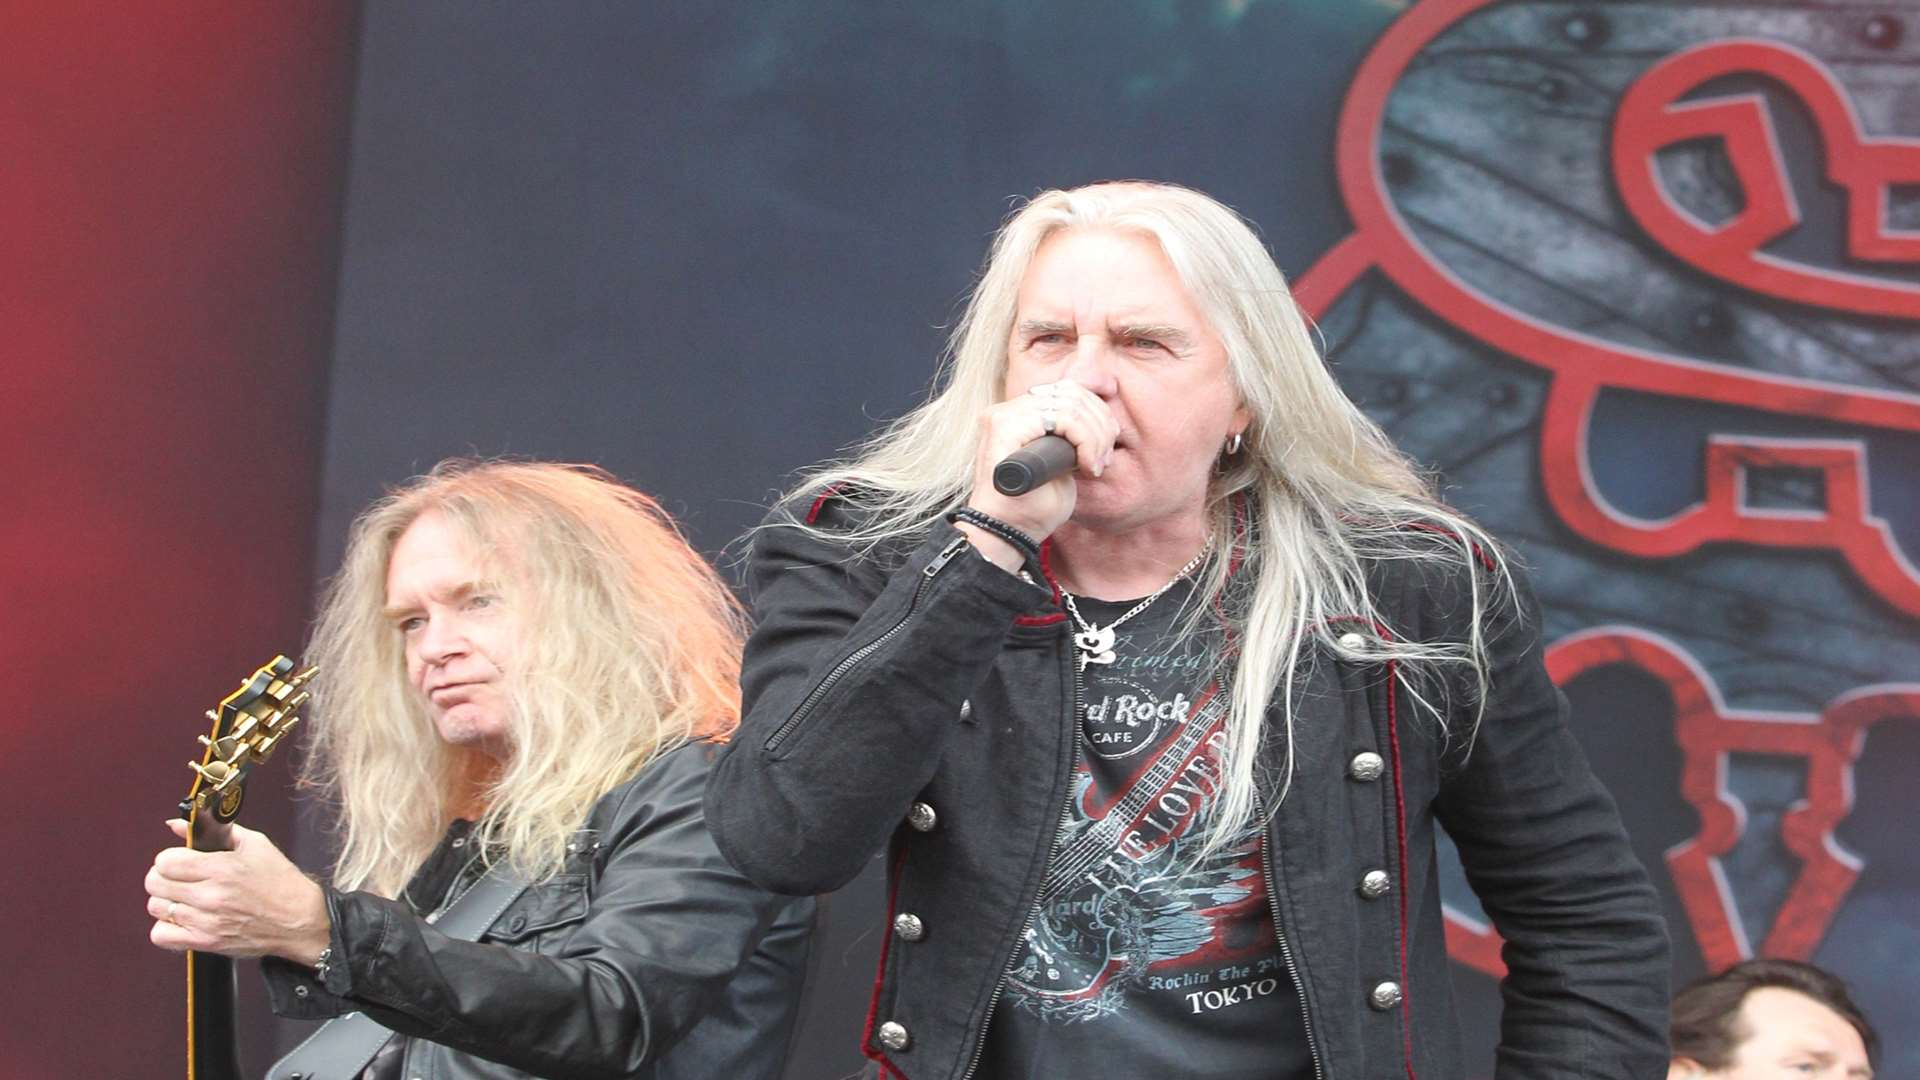 Saxon are back for this year's festival Picture: John Westhrop